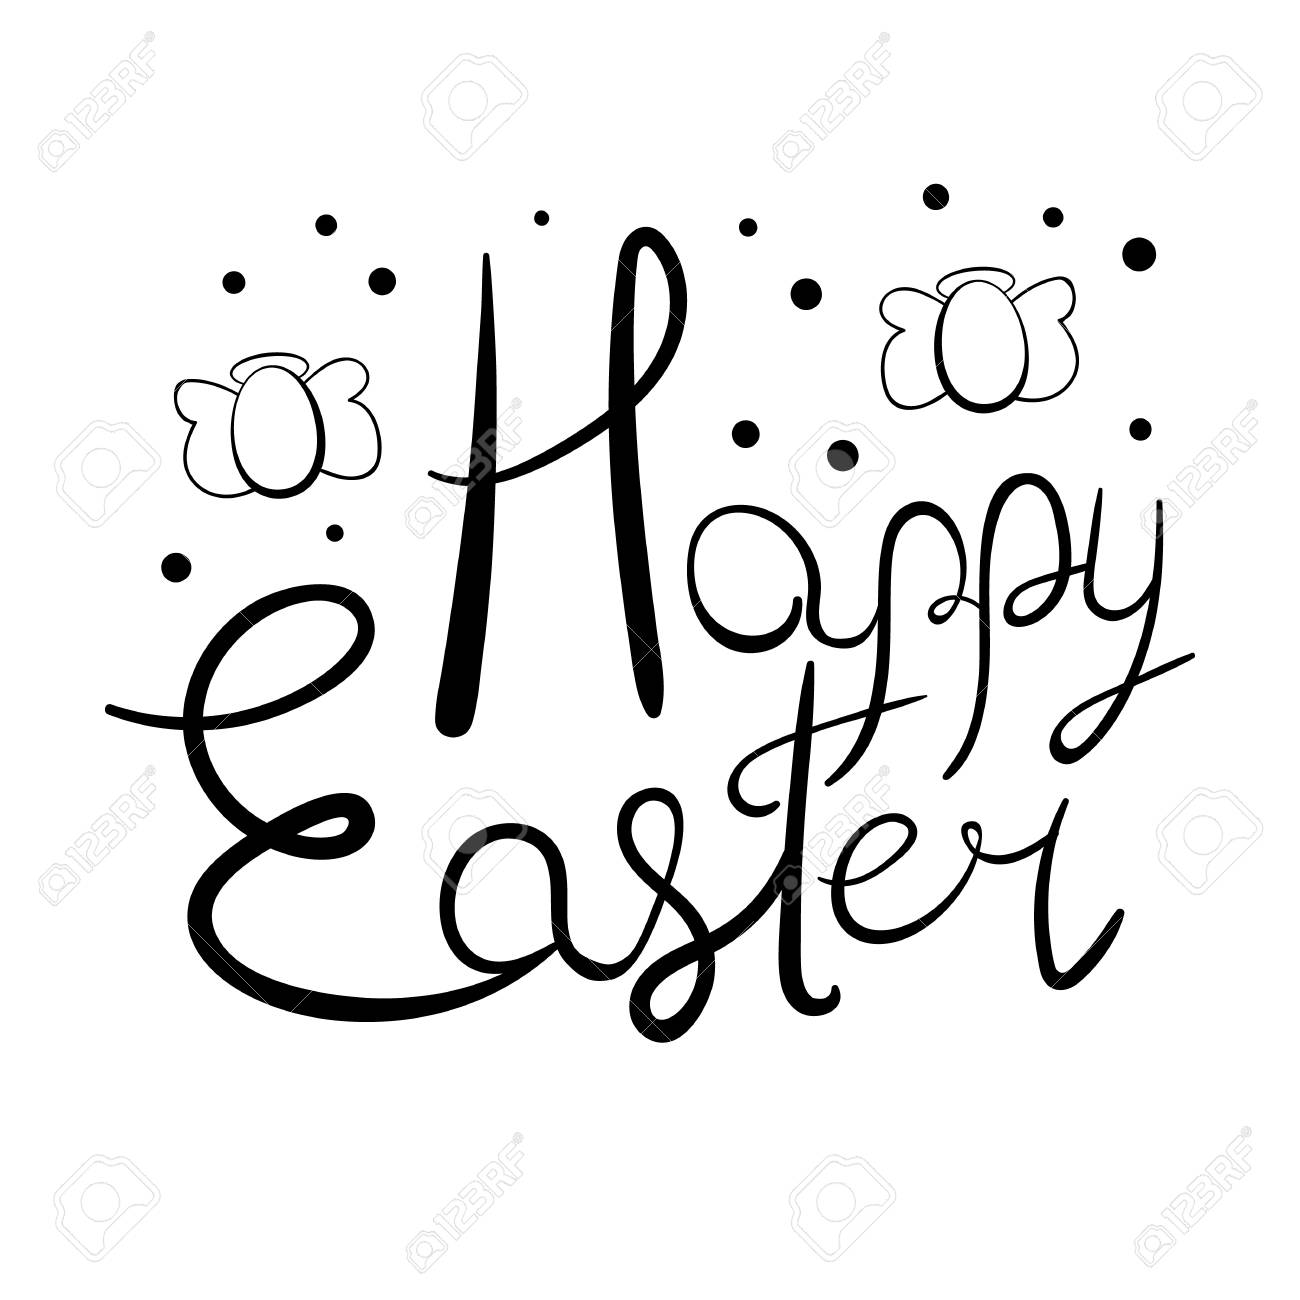 Festive Easter lettering with egg-shaped angels and polka dot elements Stock Vector - 97297173